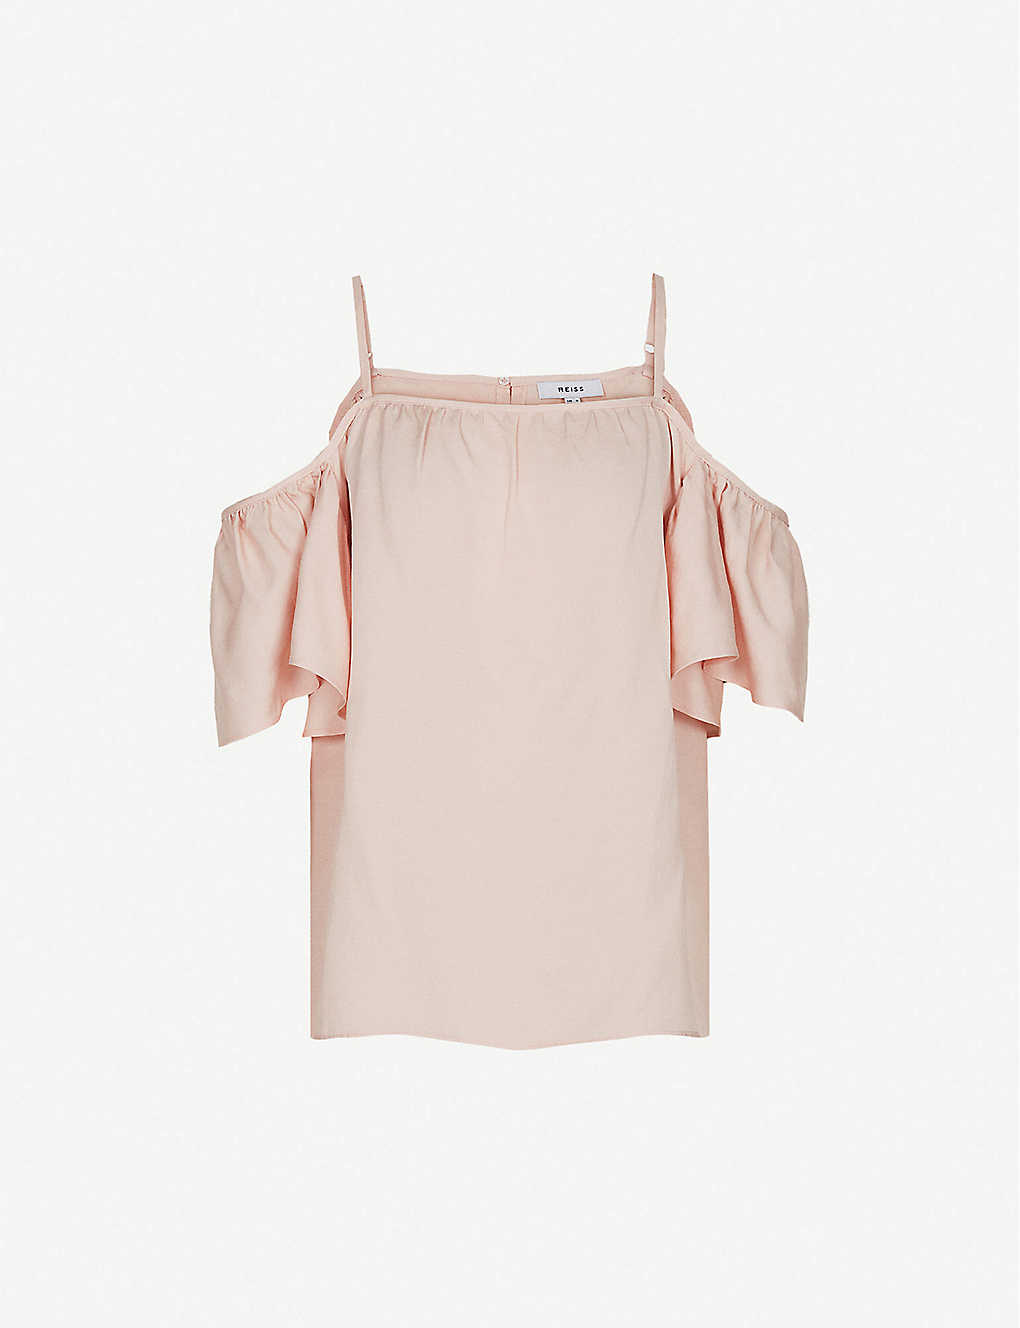 REISS: Emma off-the-shoulder crepe top